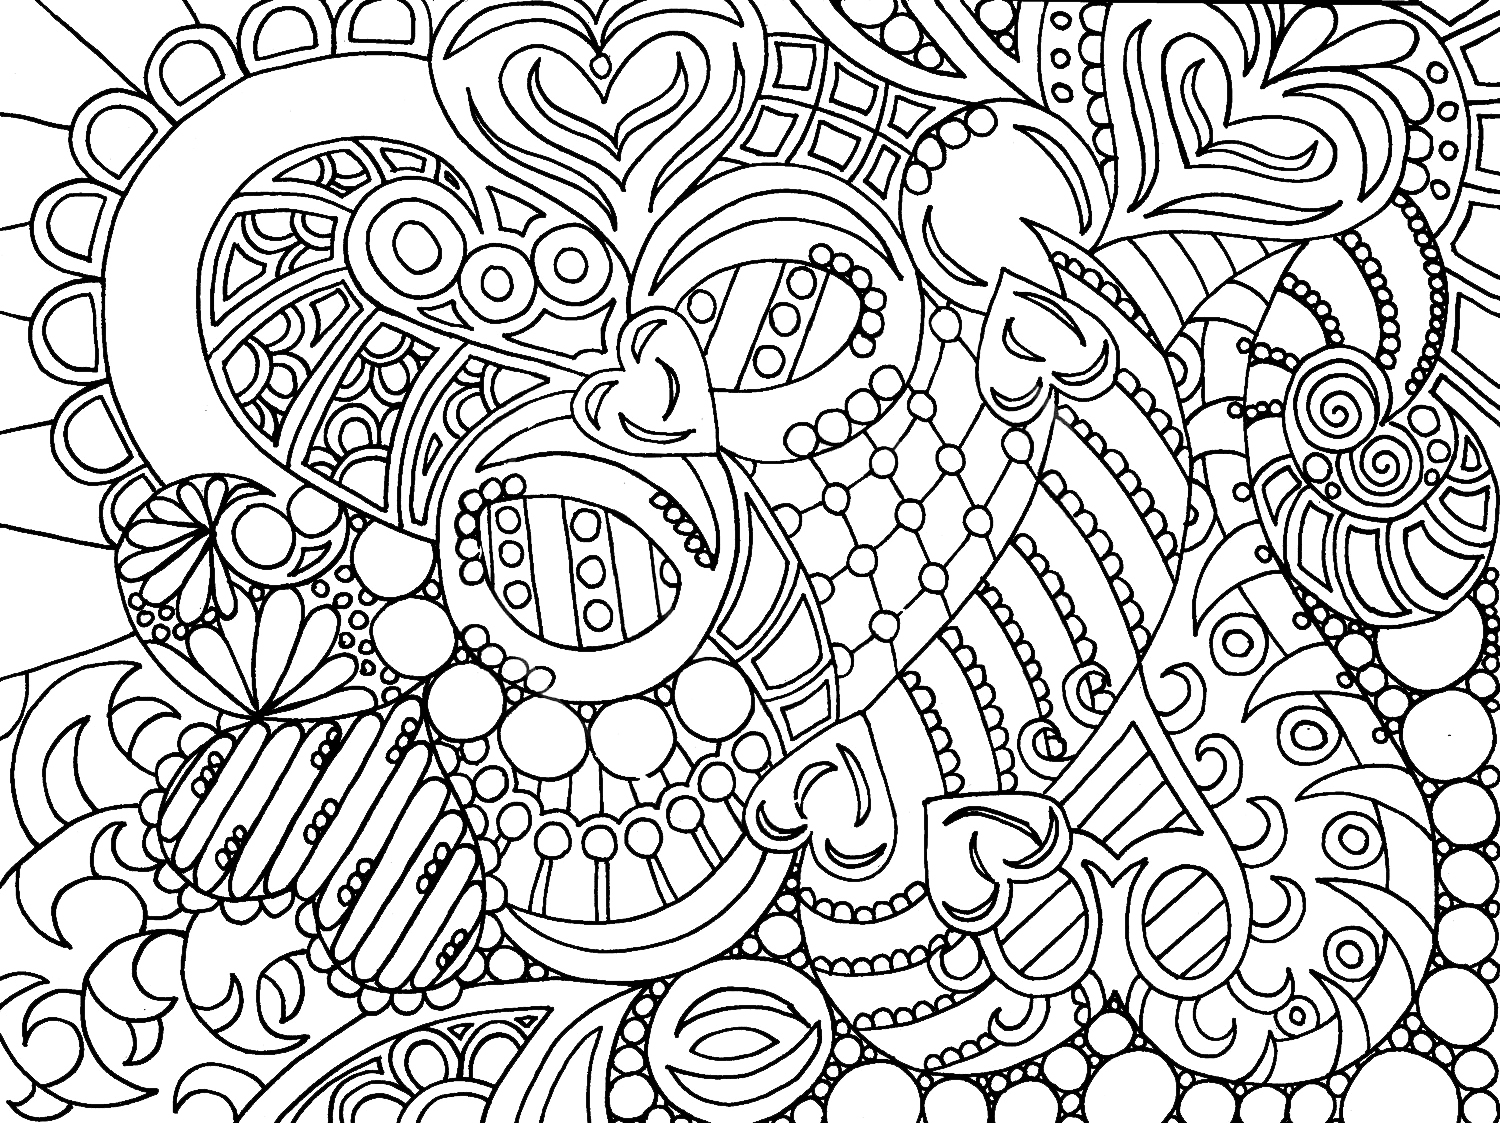 printable adults coloring pages free - photo#13